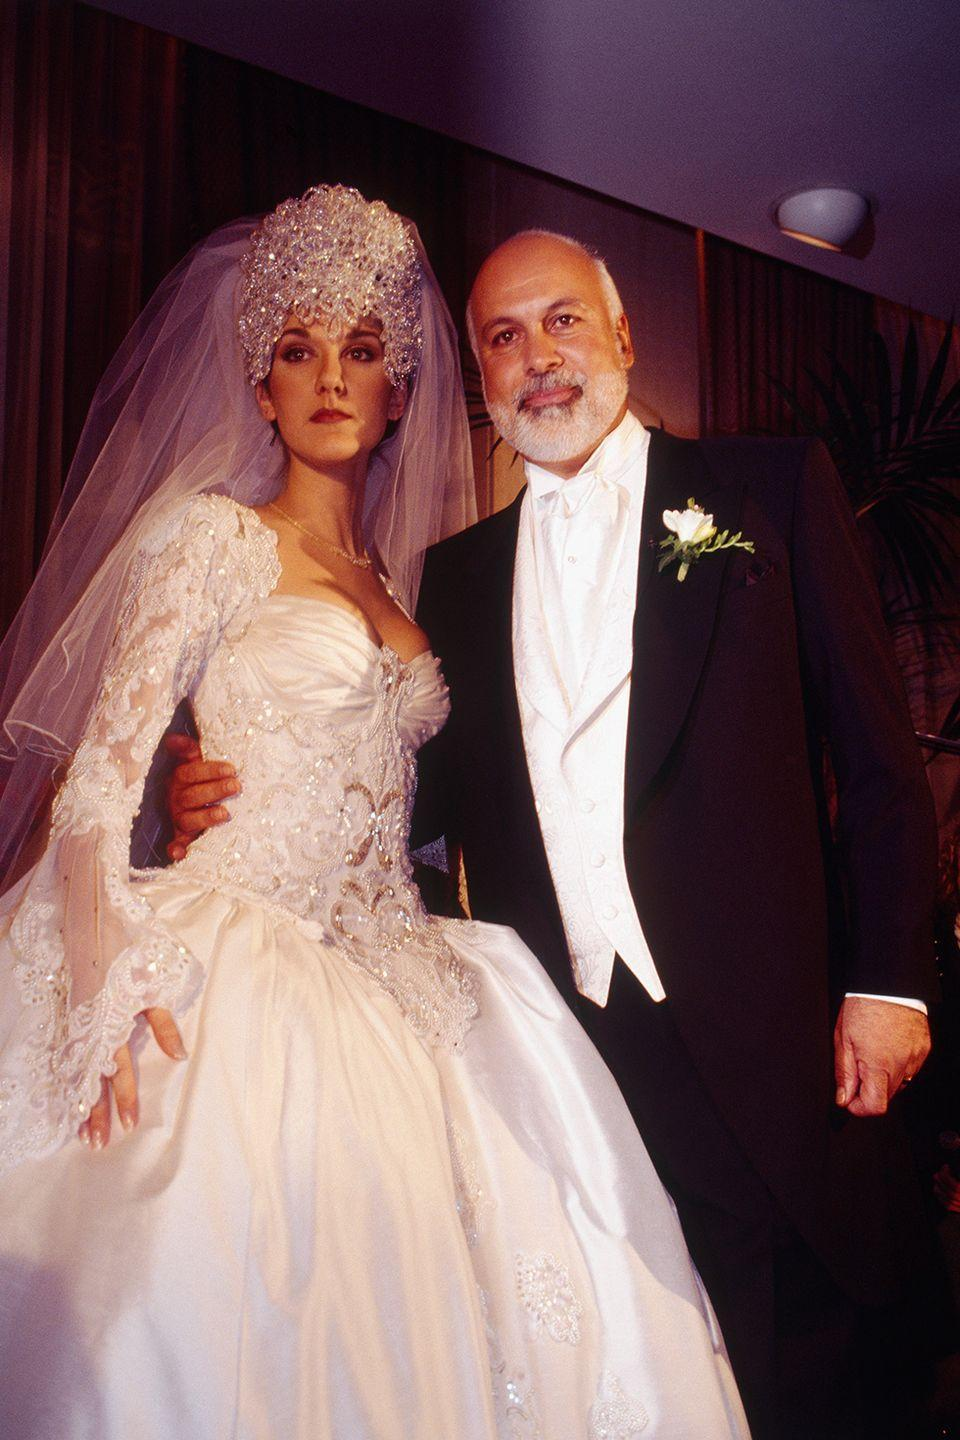 <p>Celine Dion wore an iconic ball gown with a 20-foot train to marry her manager, René Angélil. She accessorized with a headpiece that sparkled with 2,000 Austrian crystals. My heart will go on!</p>